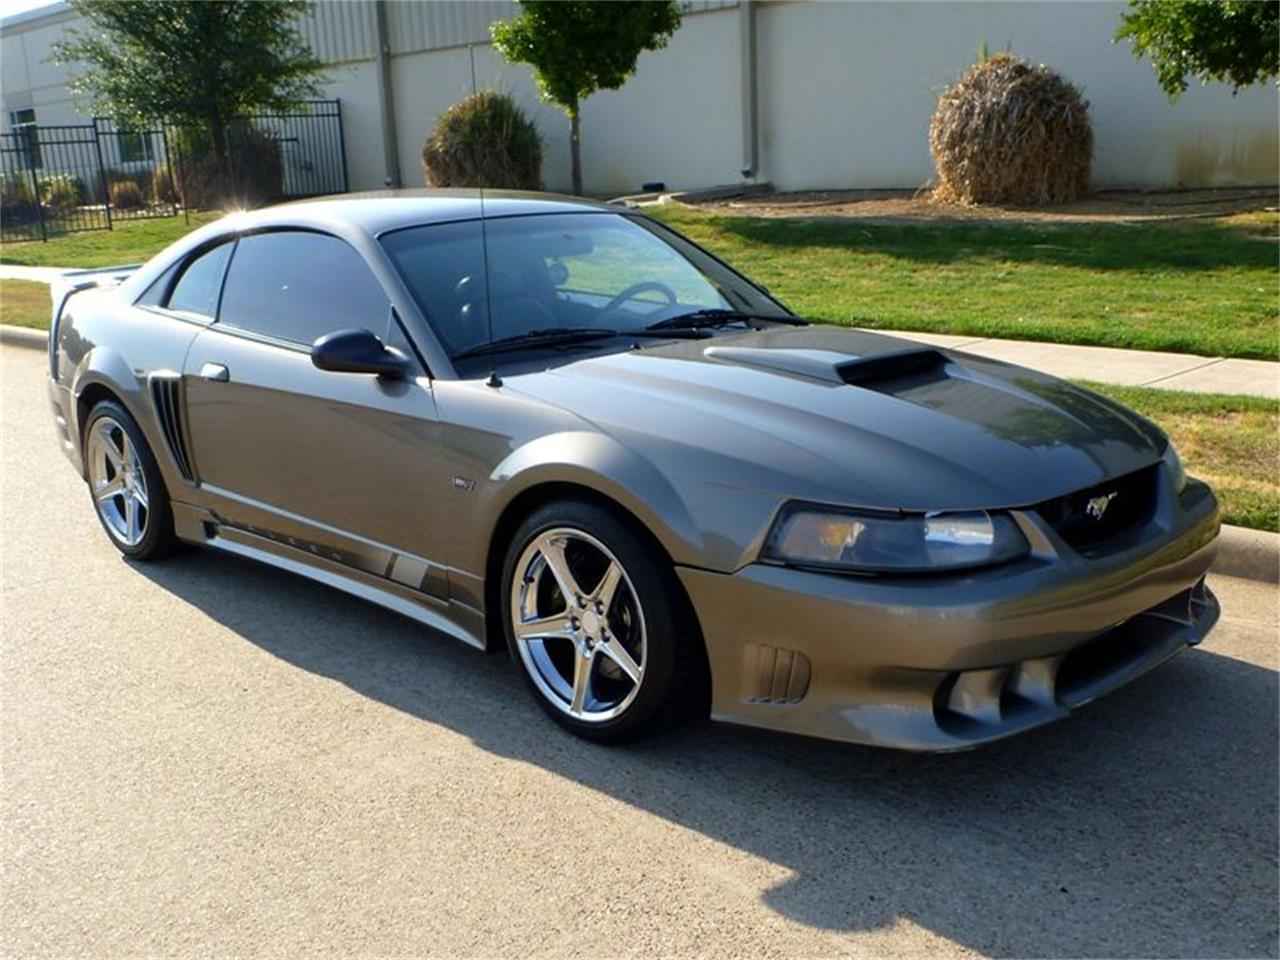 Large picture of 02 mustang o87c